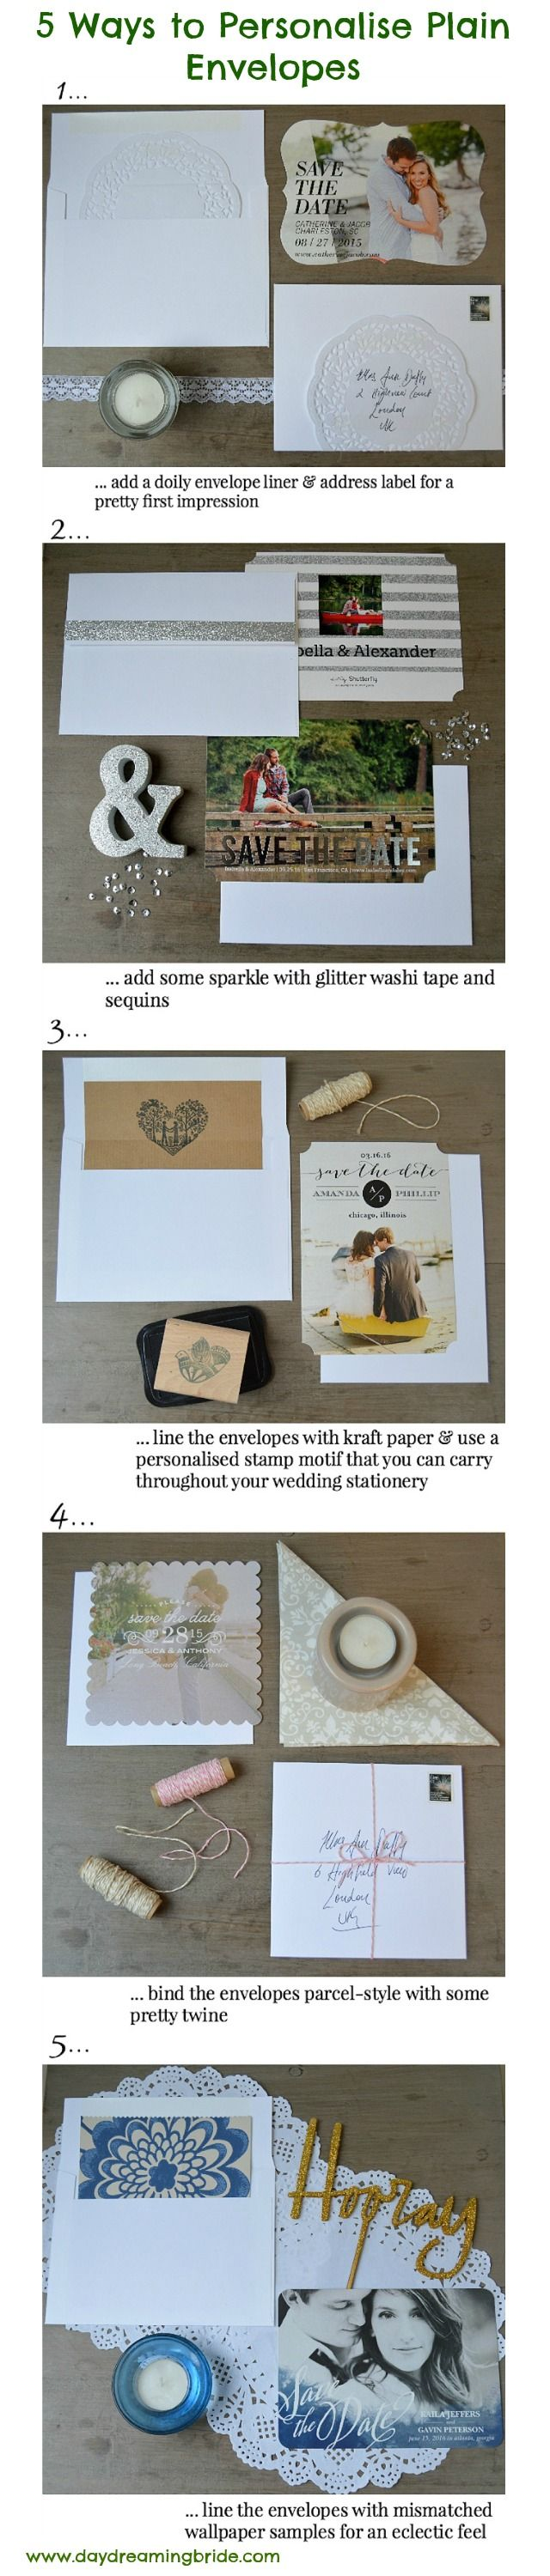 5 ways to personalise or embellish plain or cheap envelopes for wedding stationery. Make your save the dates, invitations and RSVPs even more special!